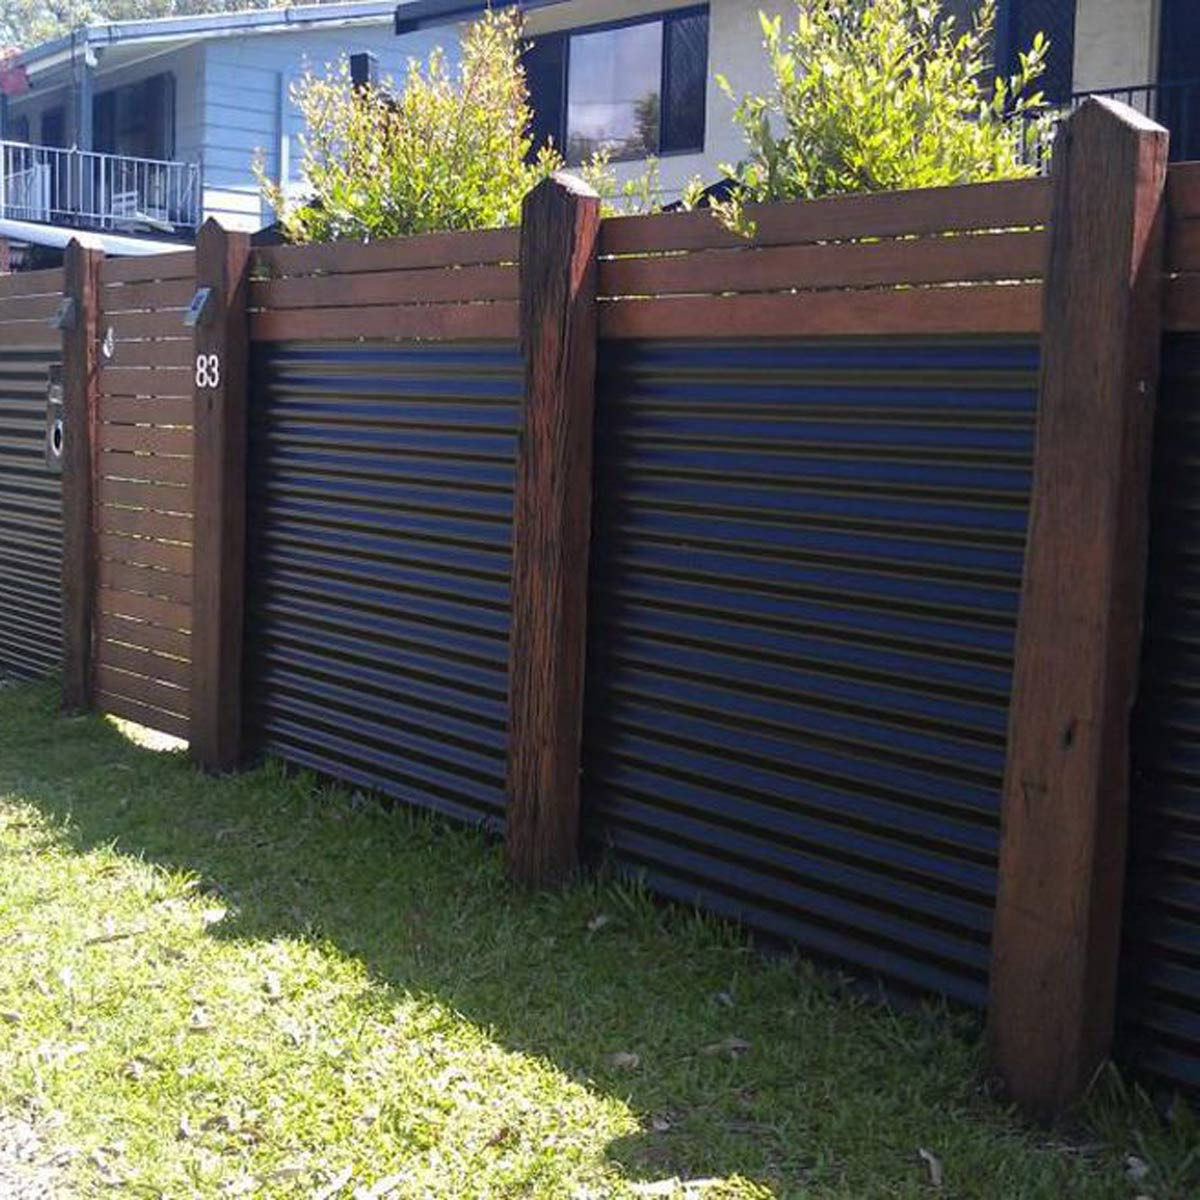 Best ideas about Corrugated Metal Fence DIY . Save or Pin 10 Modern Fence Ideas for Your Backyard — The Family Handyman Now.